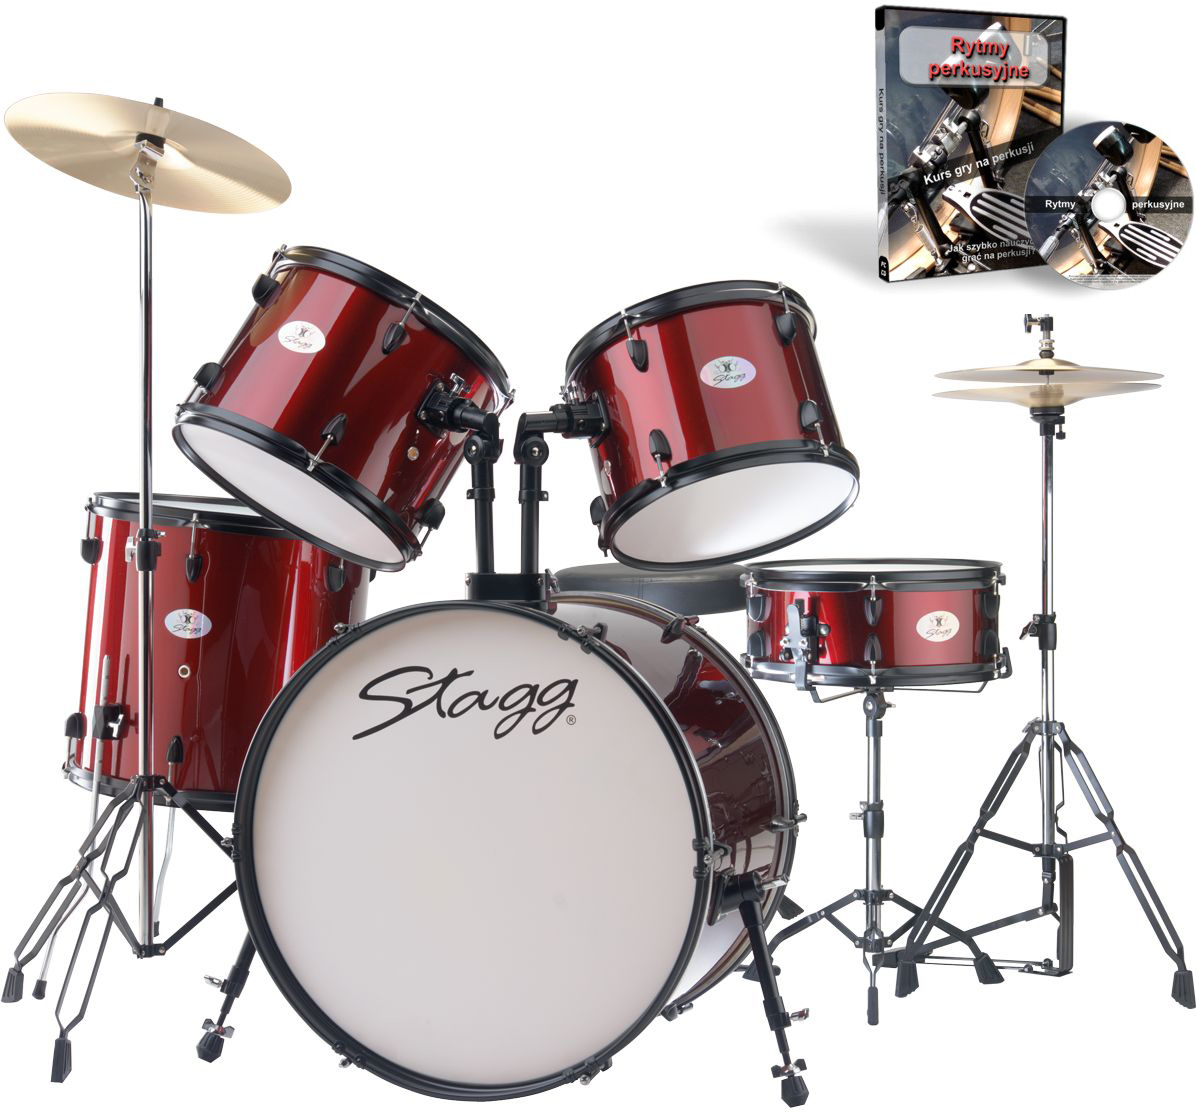 Item PROMOTION DRUMS STAGG TIM 122 CHERRY RED